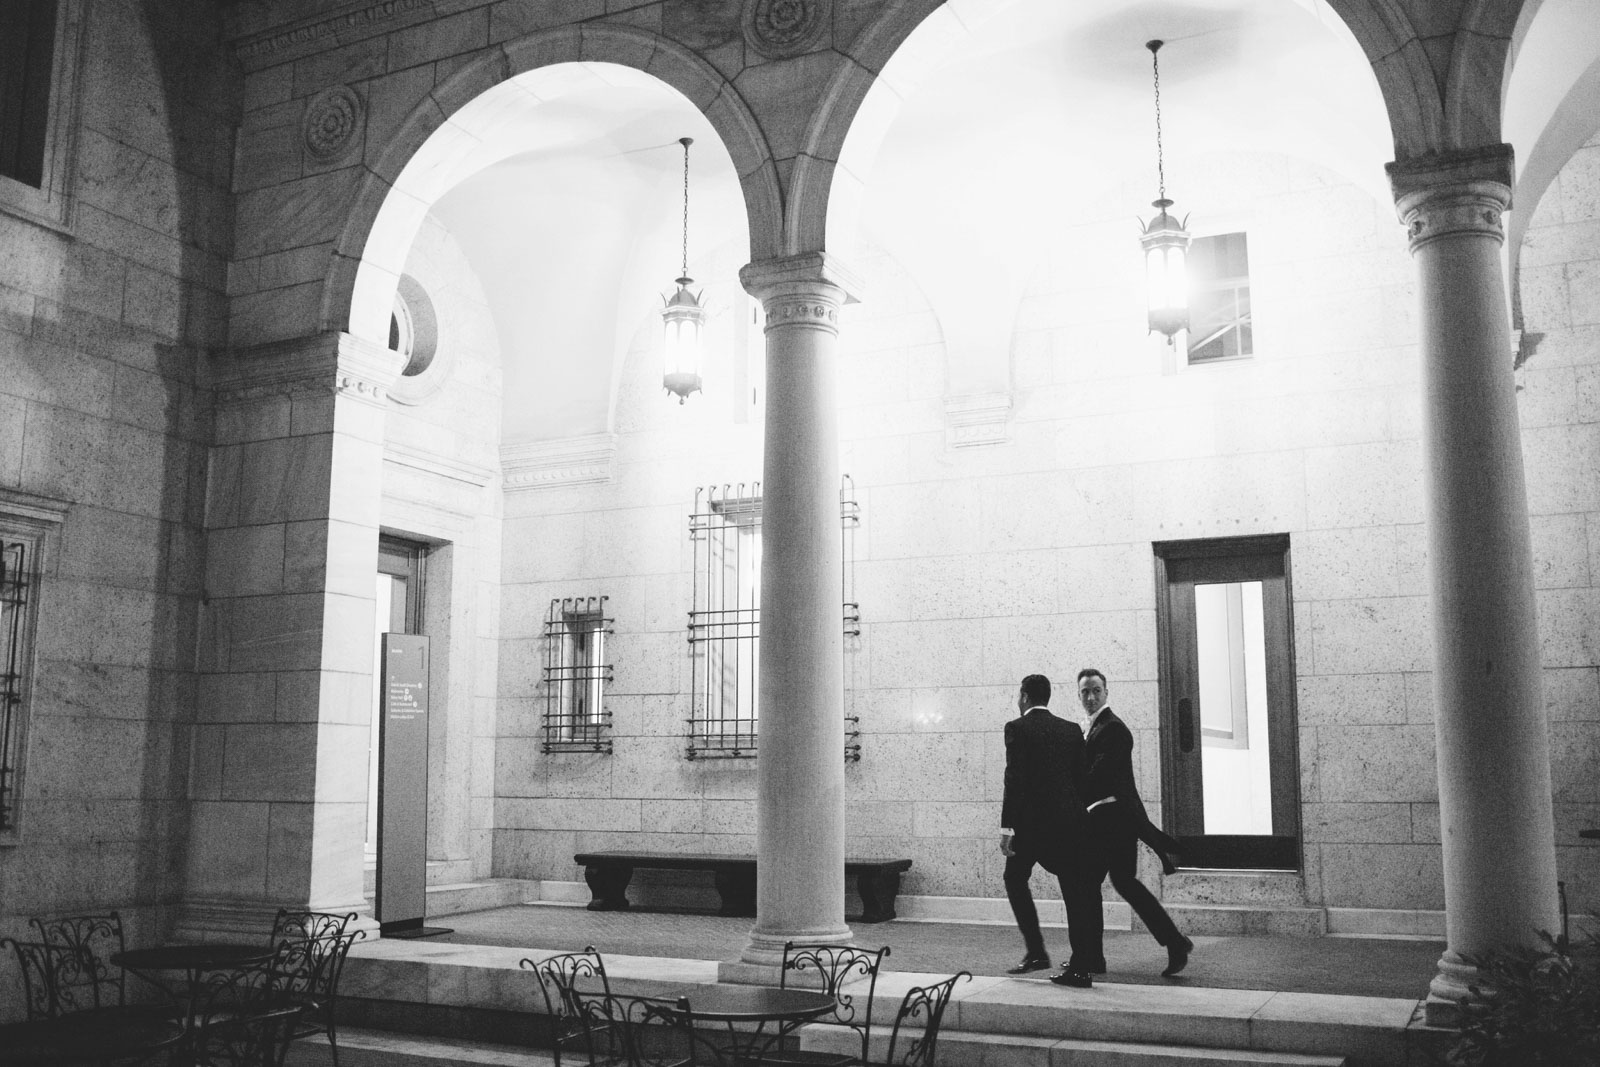 Grooms walking through courtyard after their same-sex wedding ceremony at Boston public library